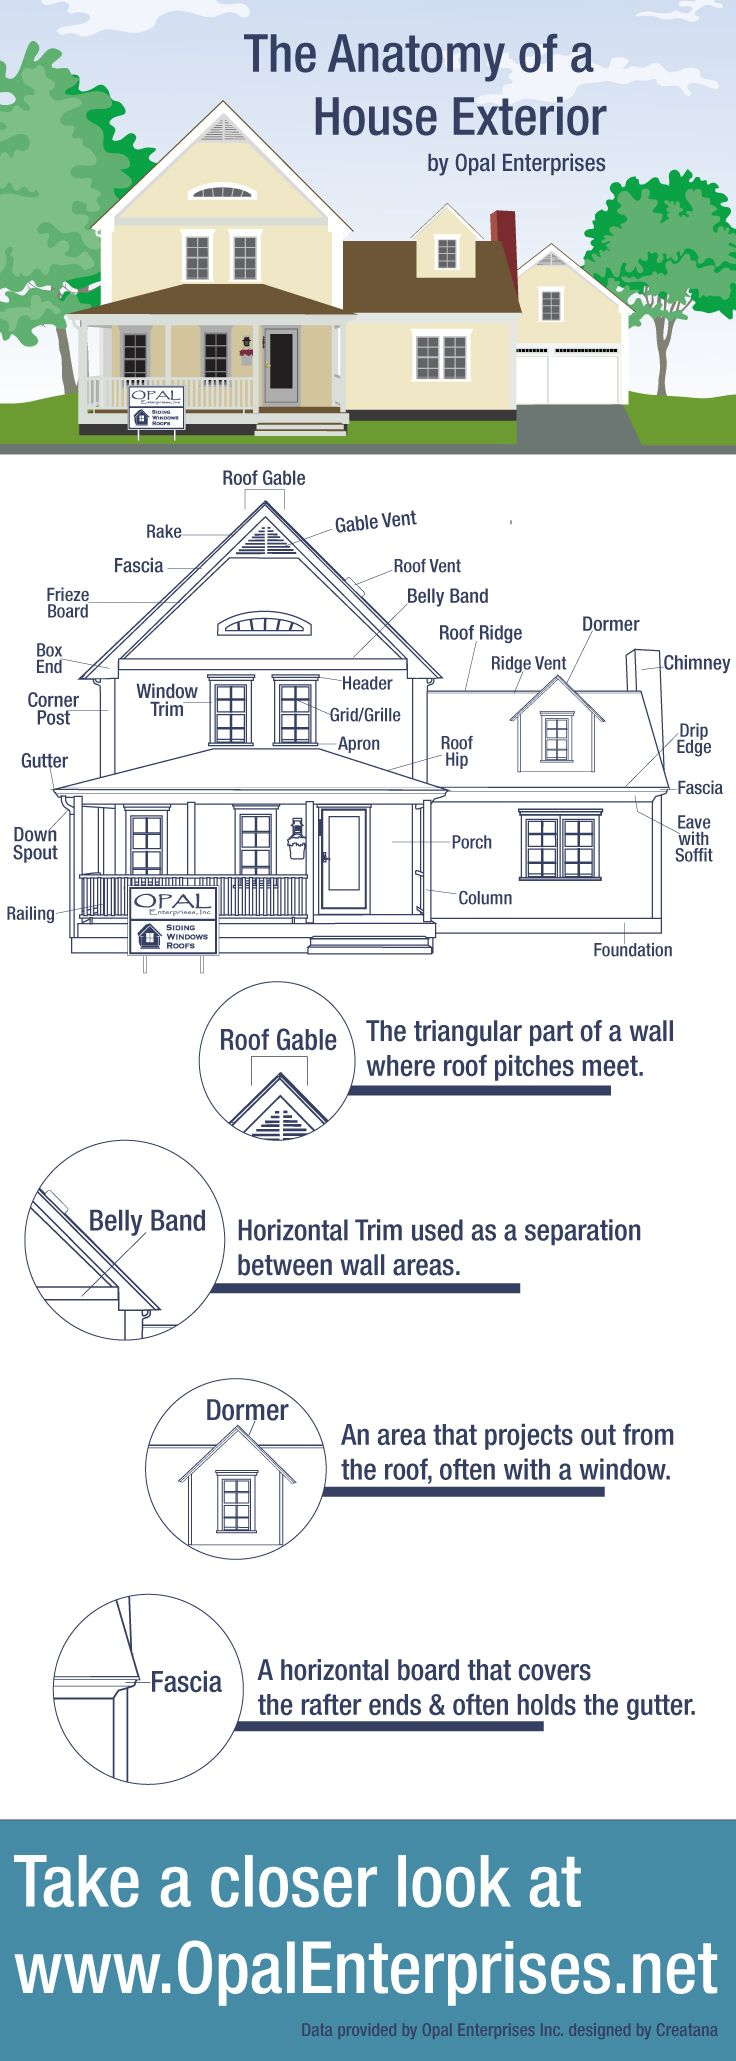 The anatomy of a house exterior - architecture terminology ...